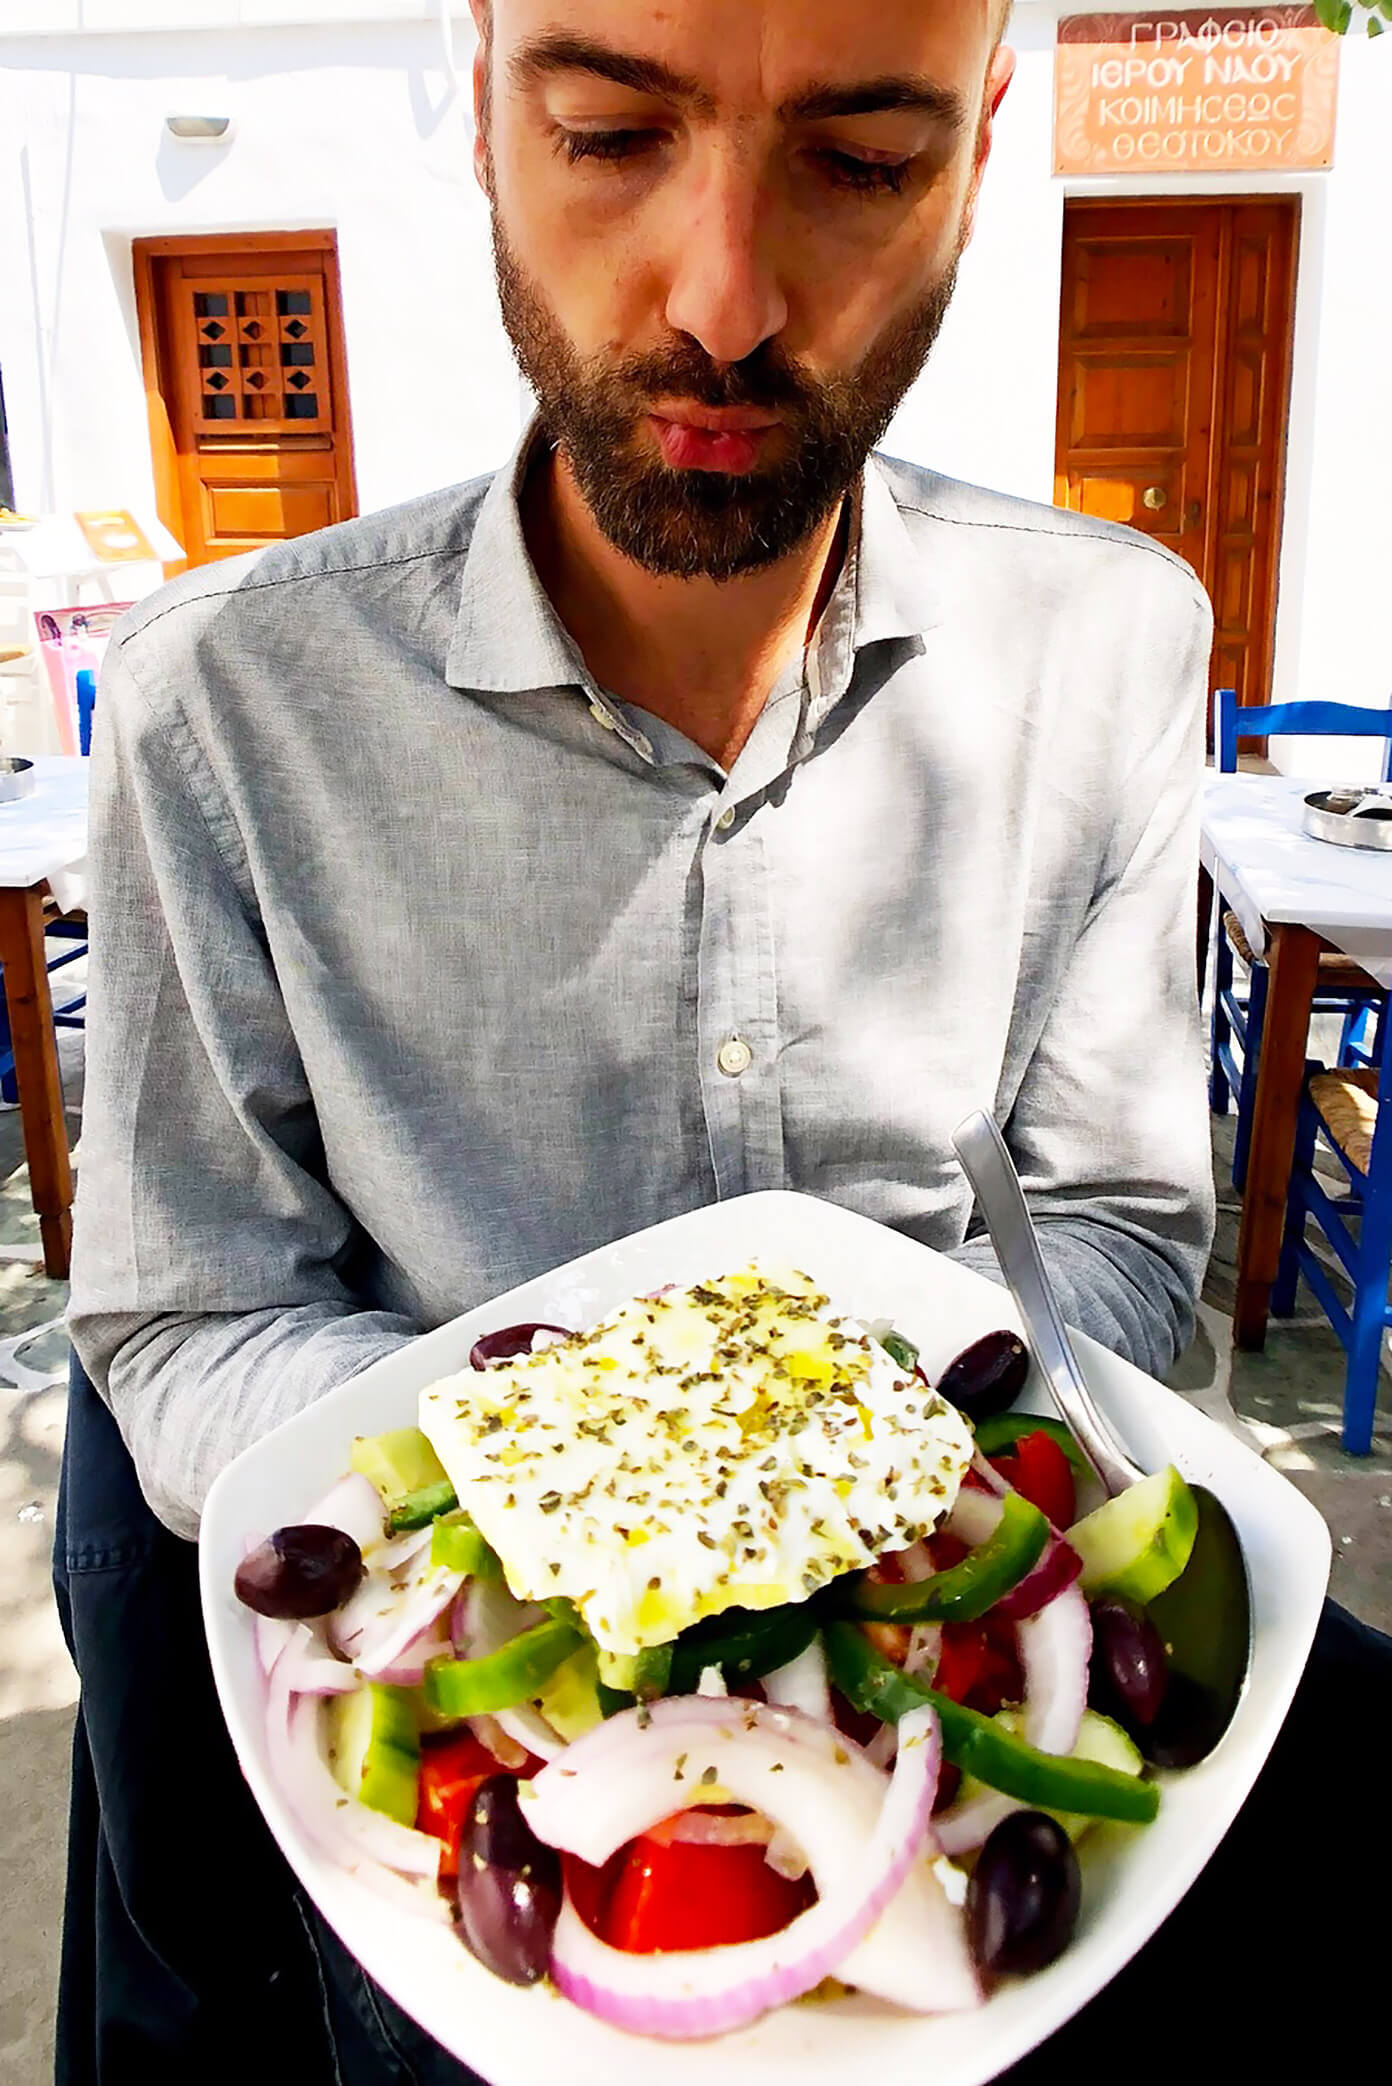 Greek Salad at Souvlaki Club in Folegandros, Greece